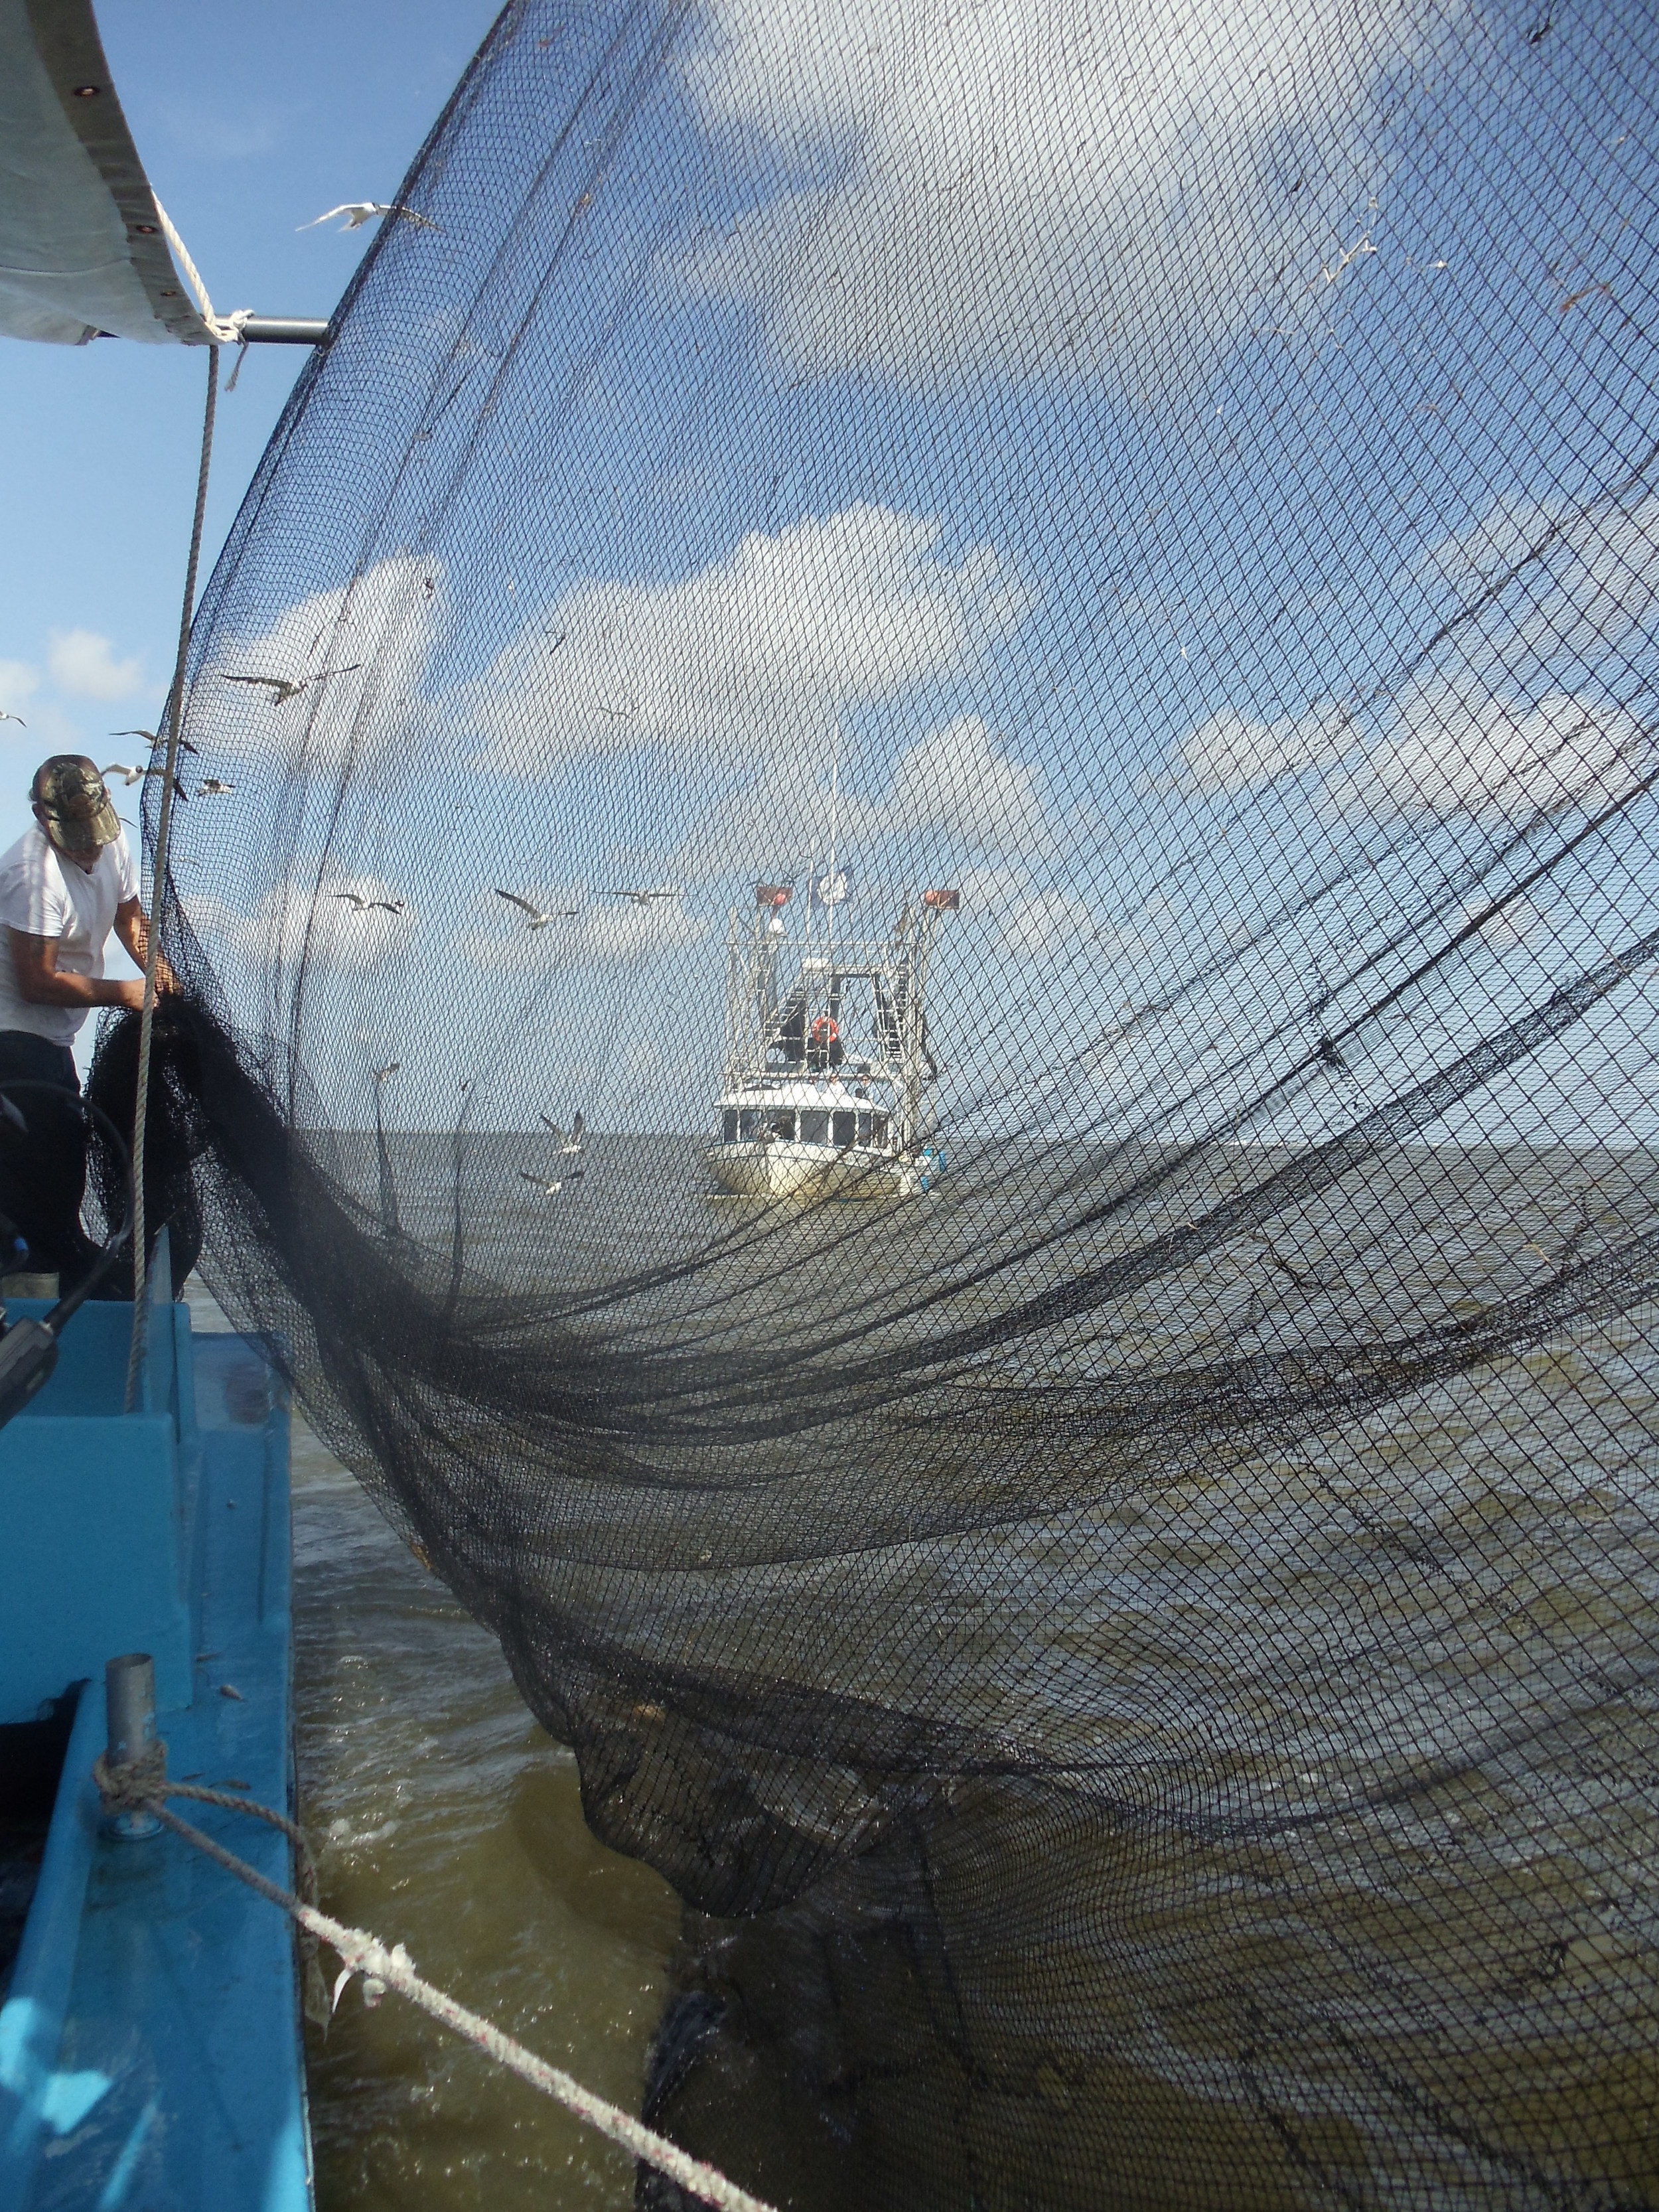 Shrimper working with net.